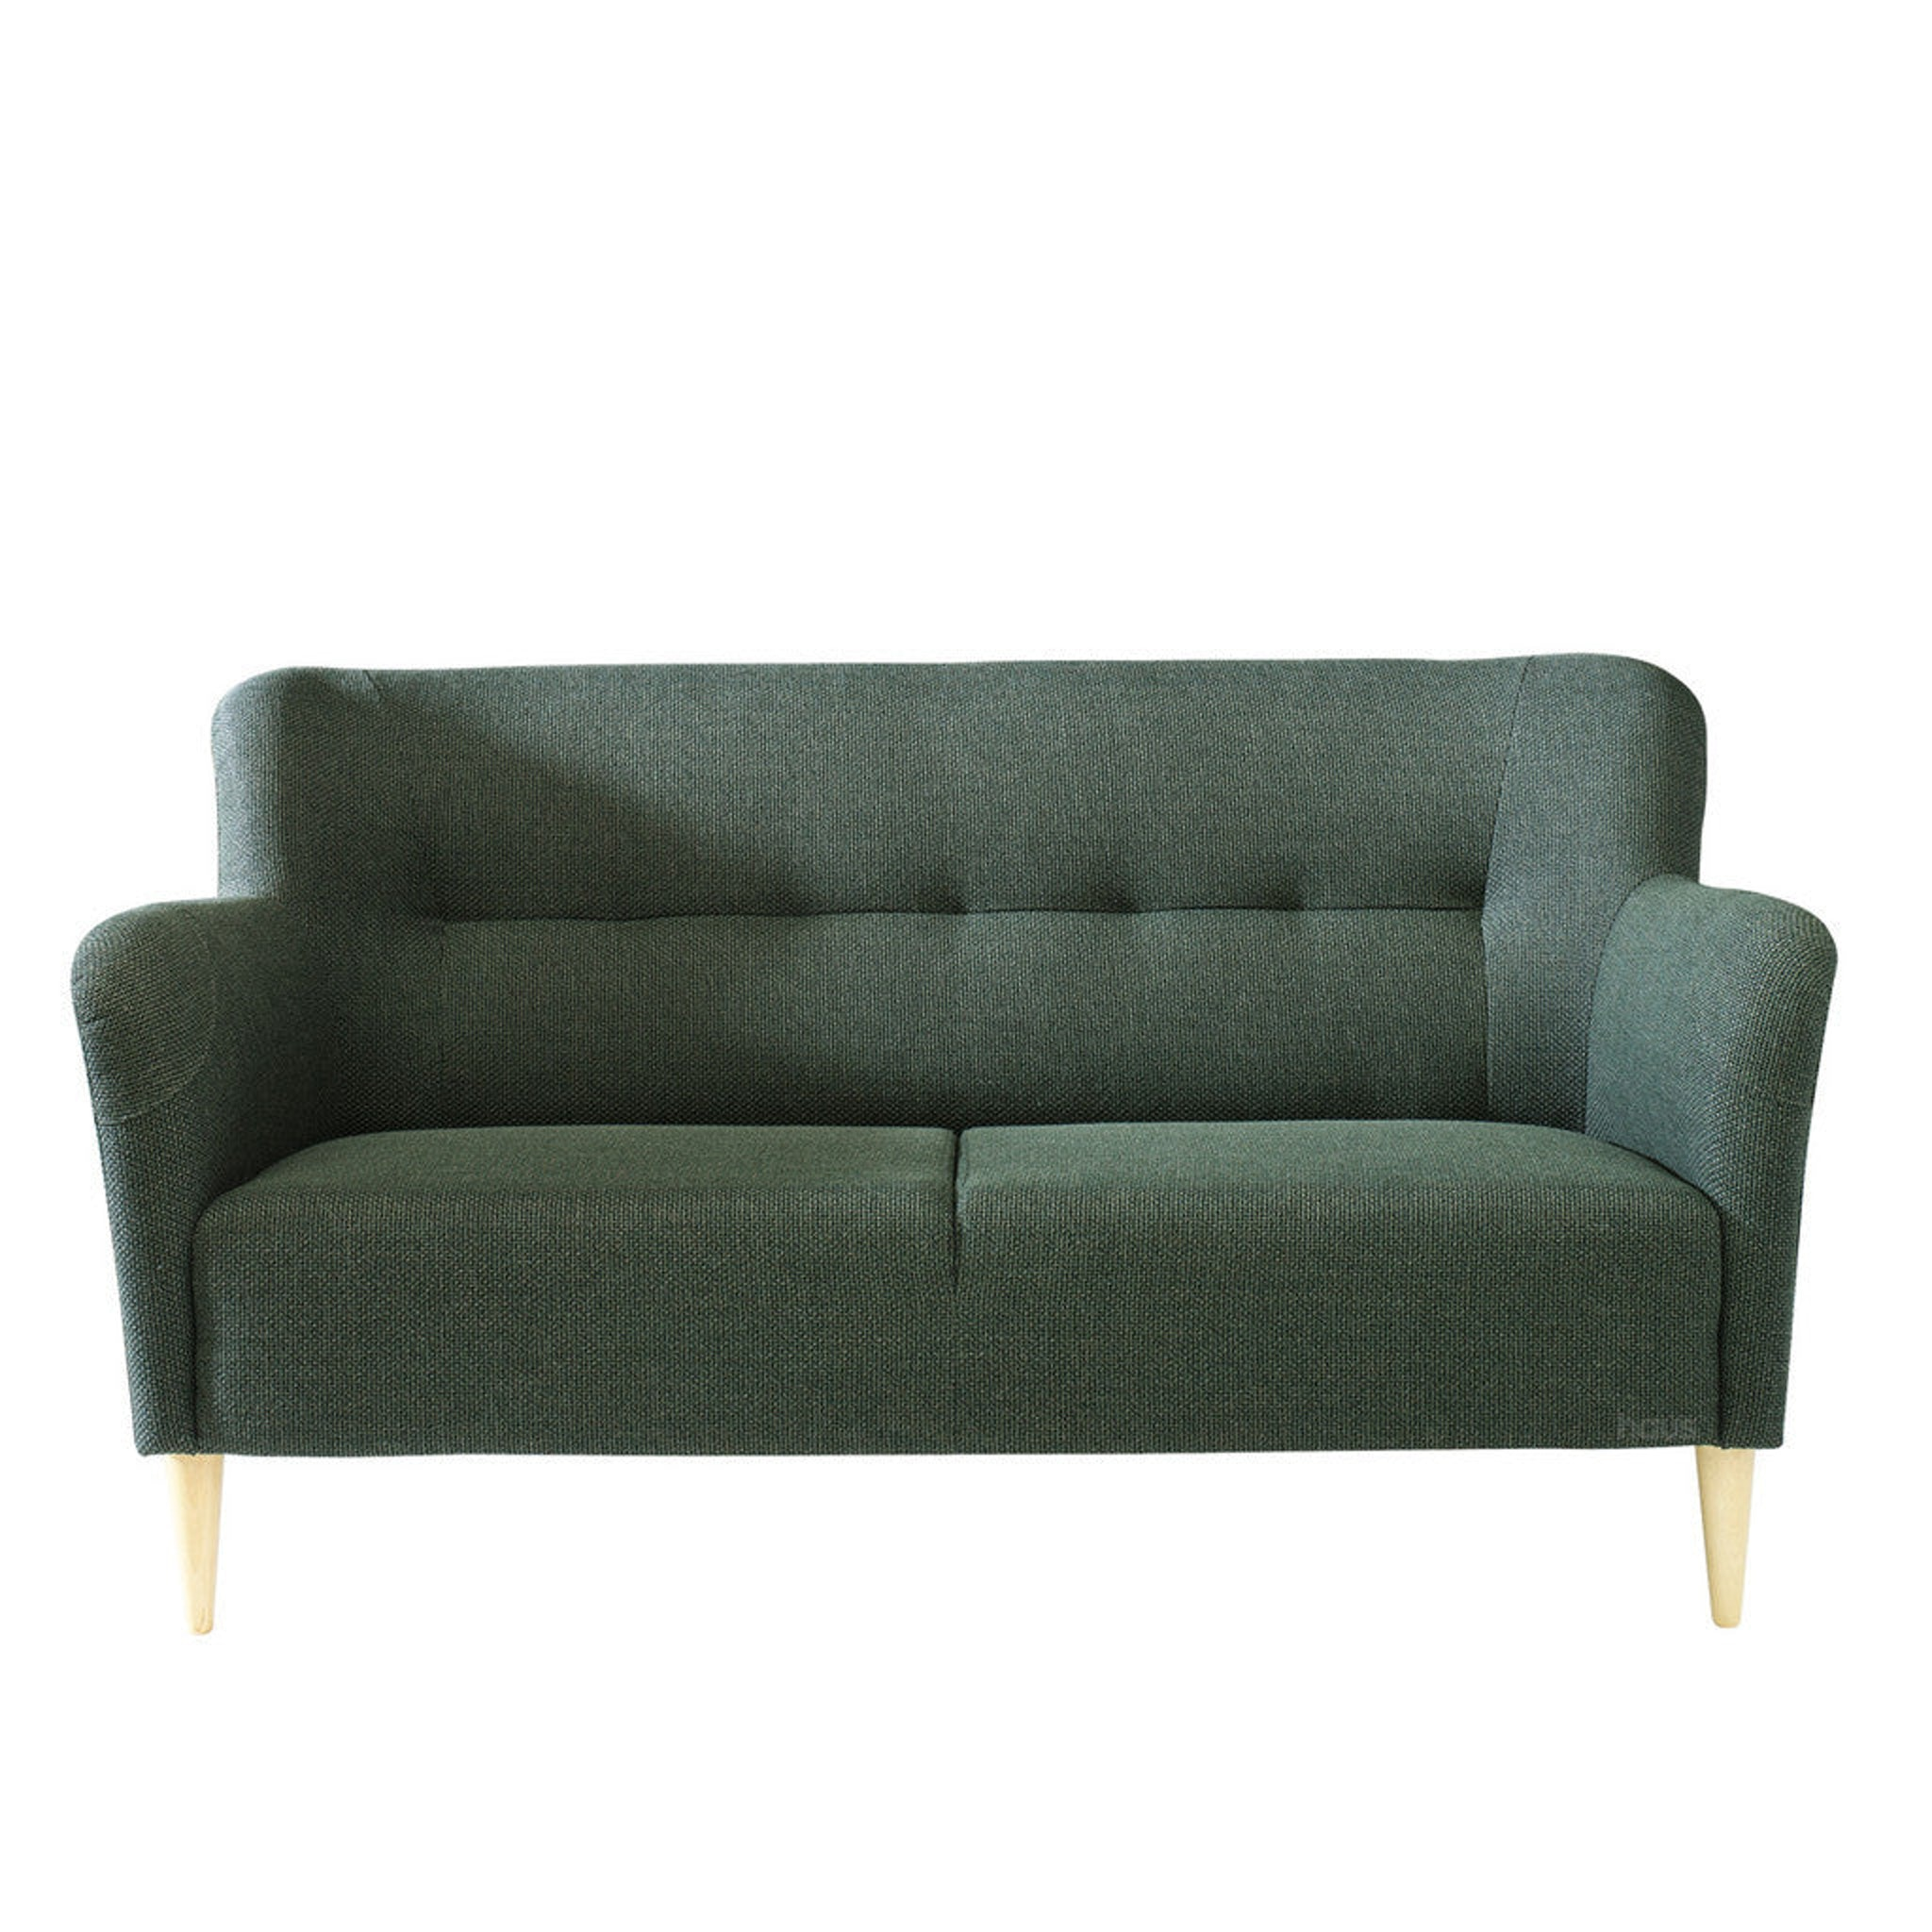 Nova Sofa by Swedese